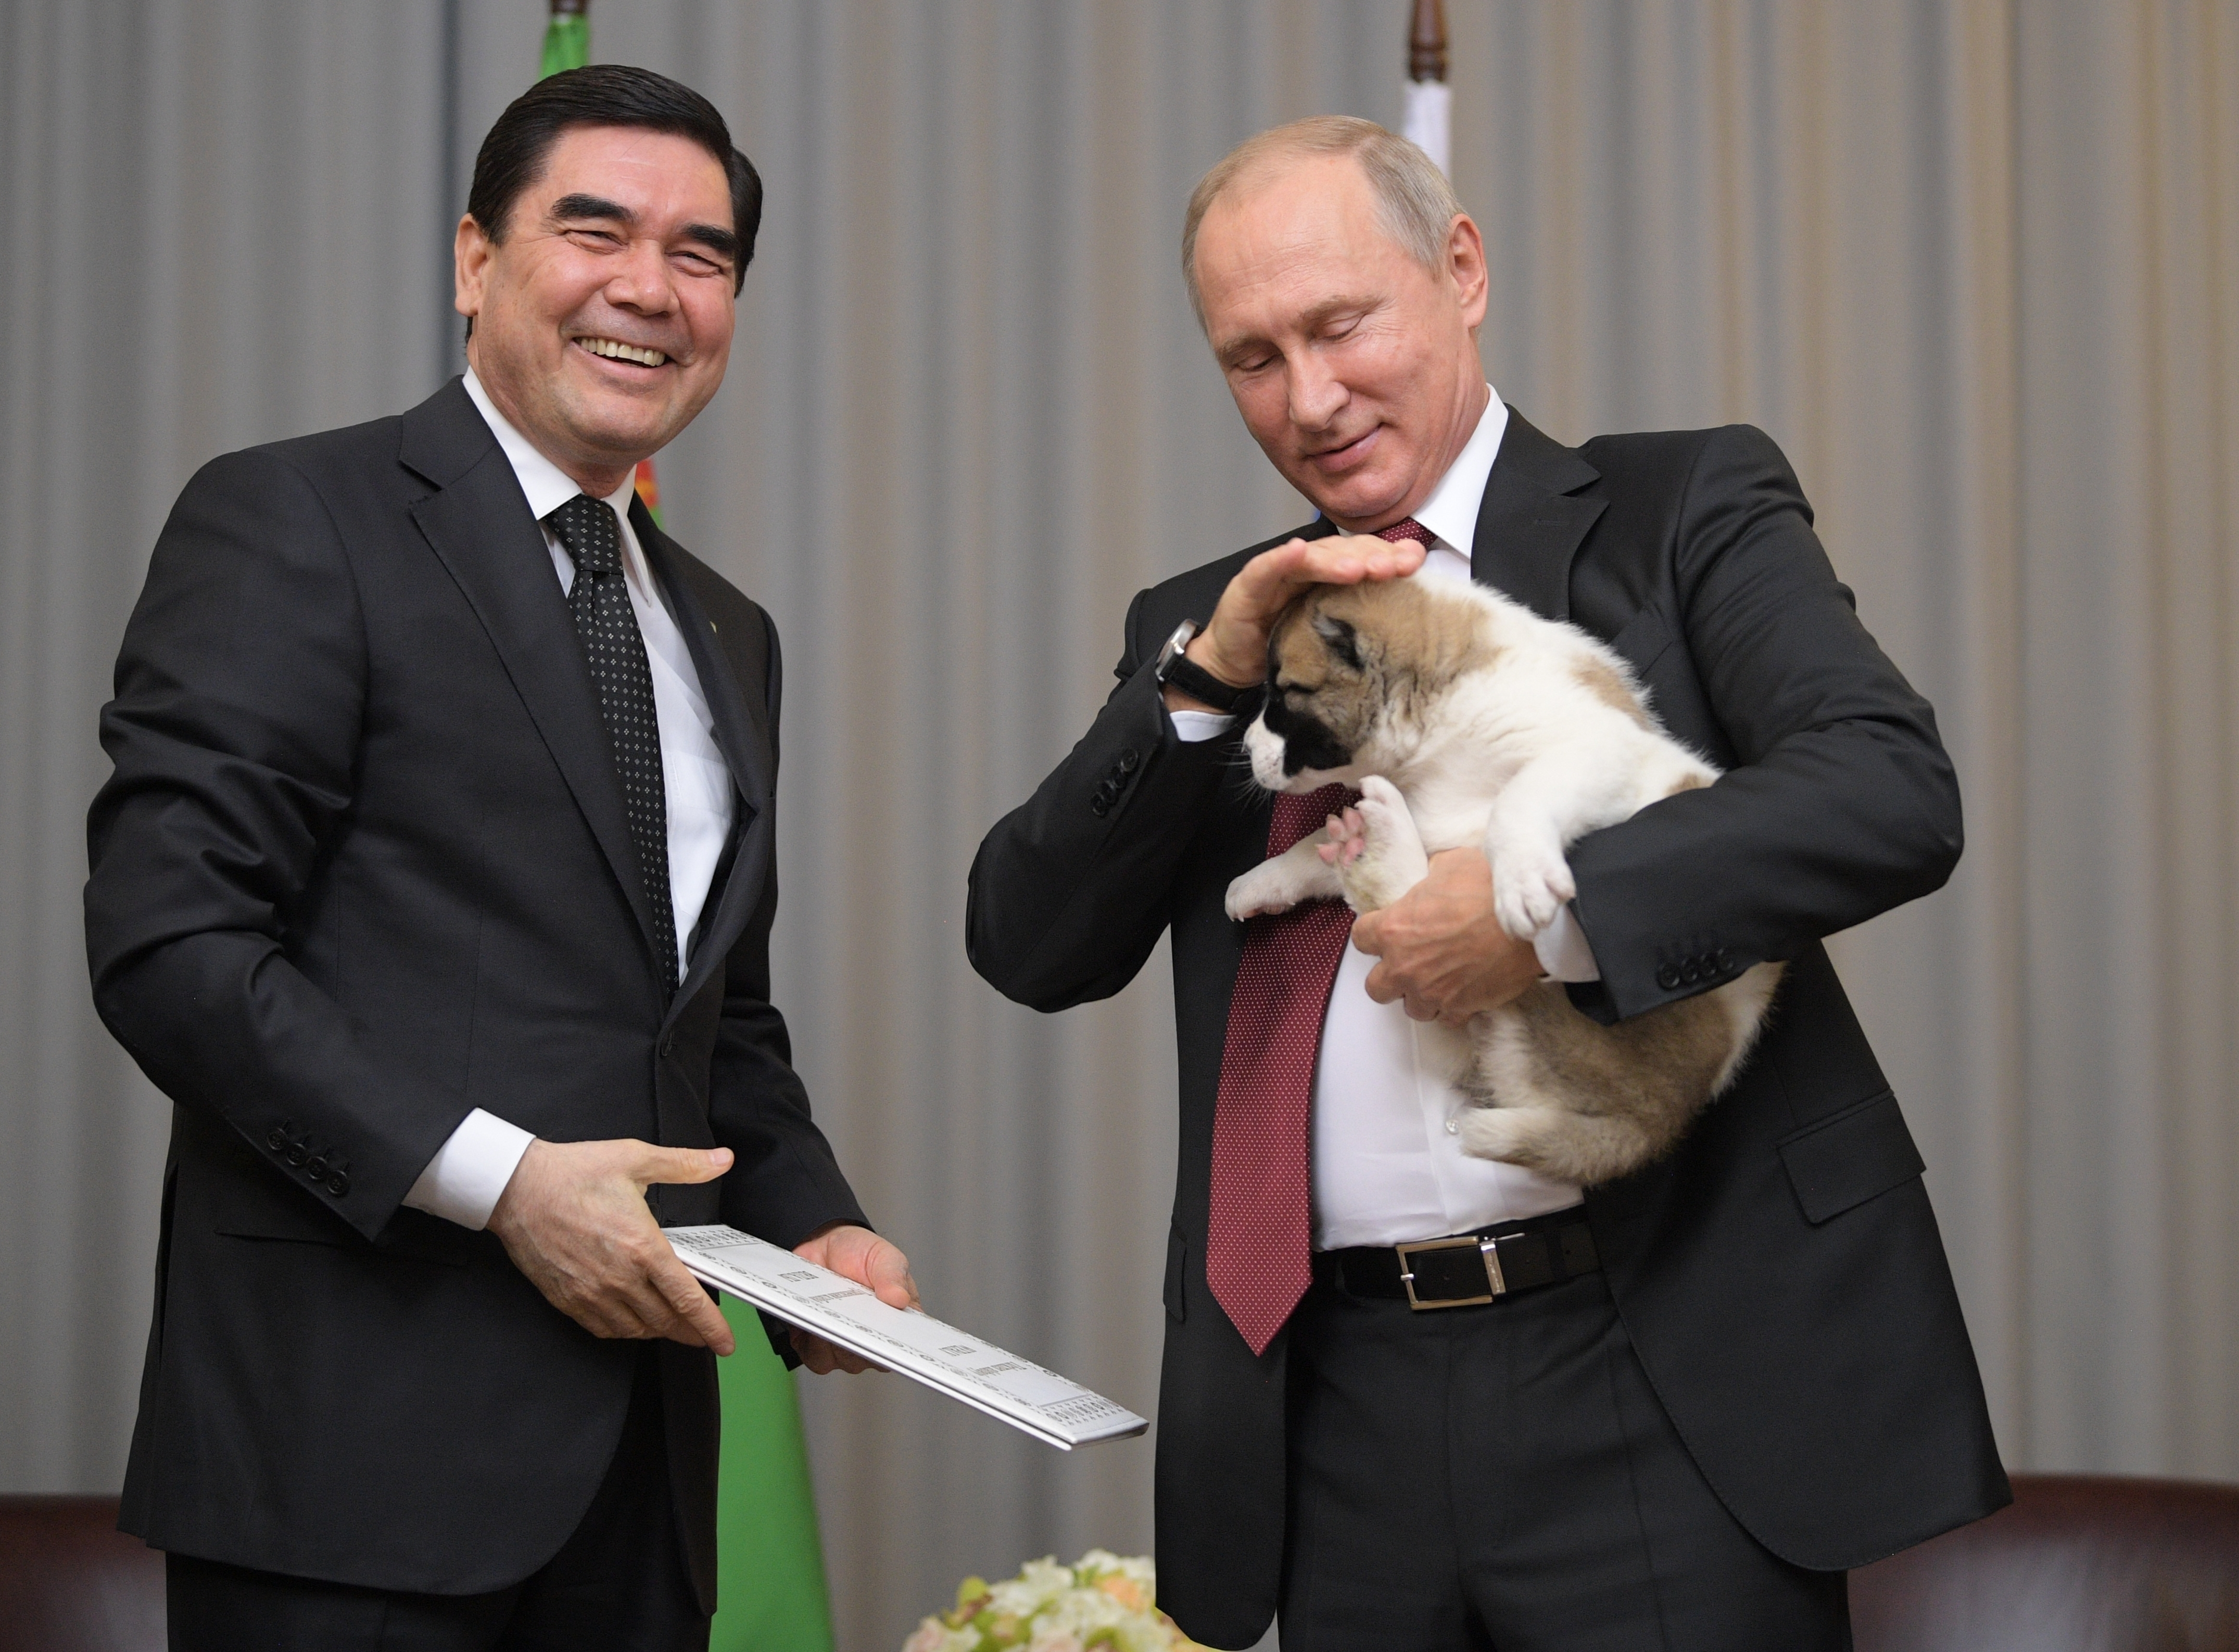 Turkmenistan's President Gurbanguly Berdymukhamedov, right, smiles as he presents a puppy to Russian President Vladimir Putin during their meeting in the Bocharov Ruchei residence in the Black Sea resort of Sochi, Russia, Wednesday, Oct. 11, 2017. The presidents met on the sidelines of a summit of leaders of ex-Soviet nations in Sochi. (Alexei Druzhinin/Sputnik, Kremlin Pool Photo via AP)